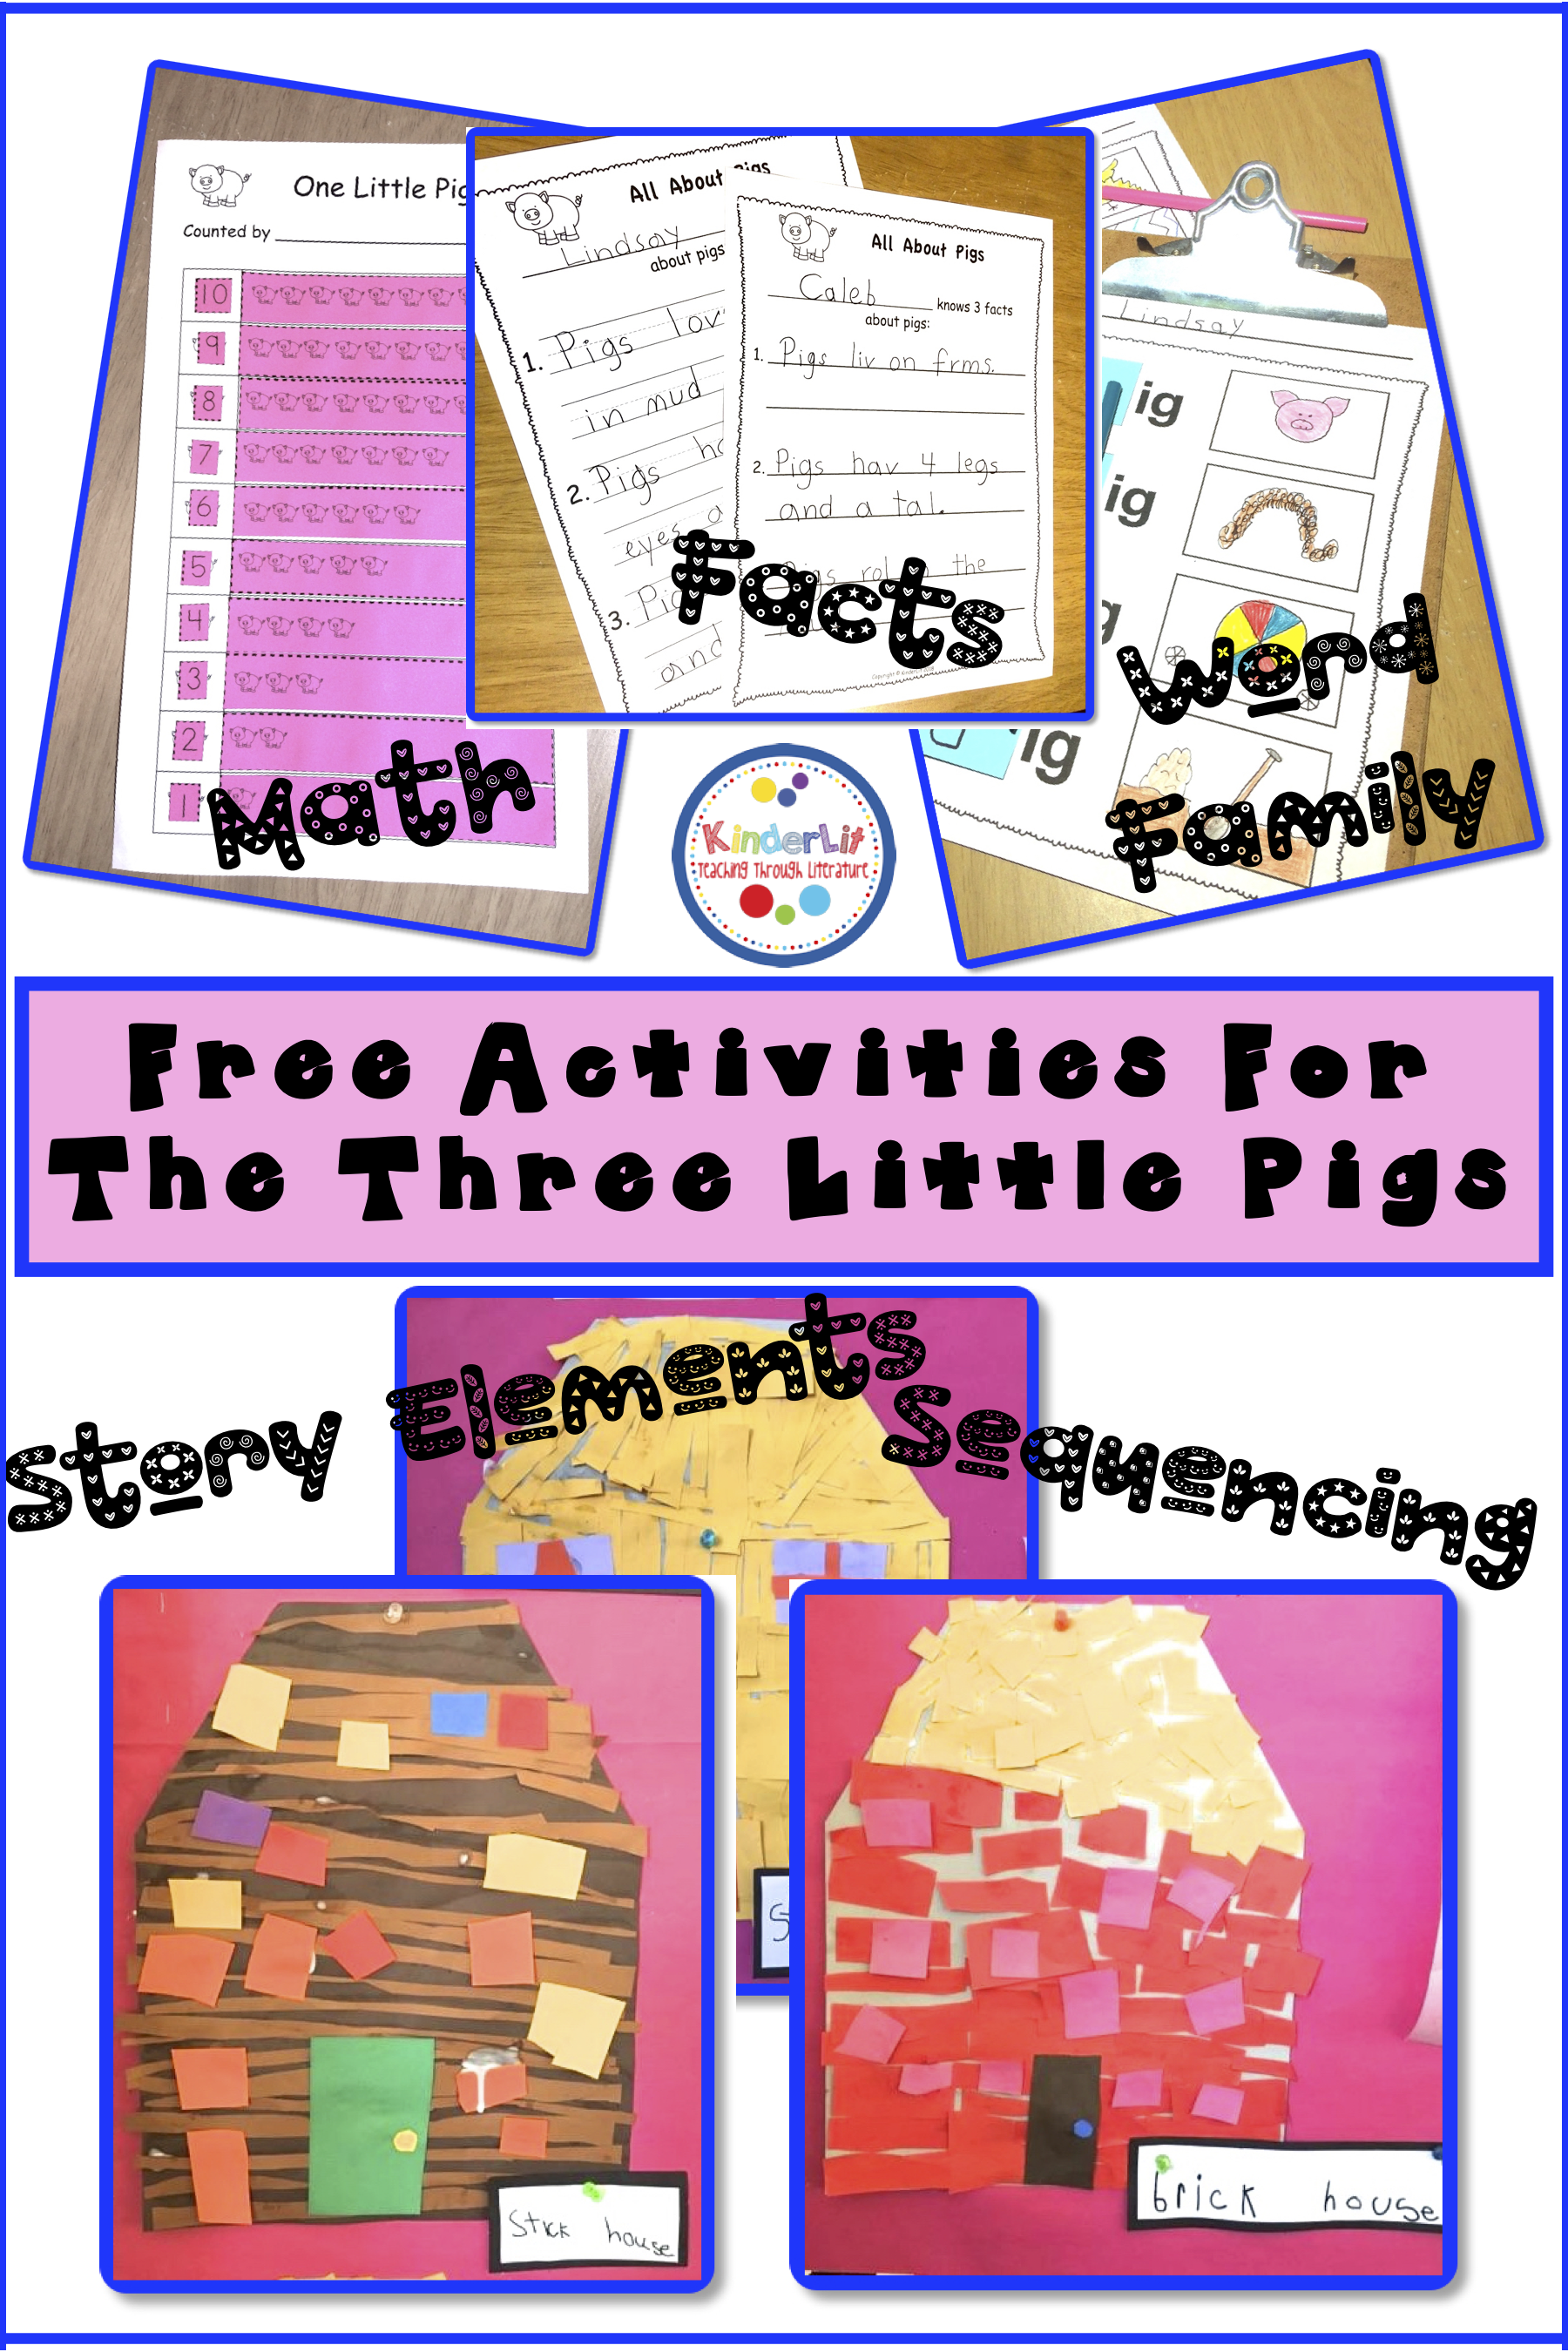 Activities For The Three Little Pigs With Freebies